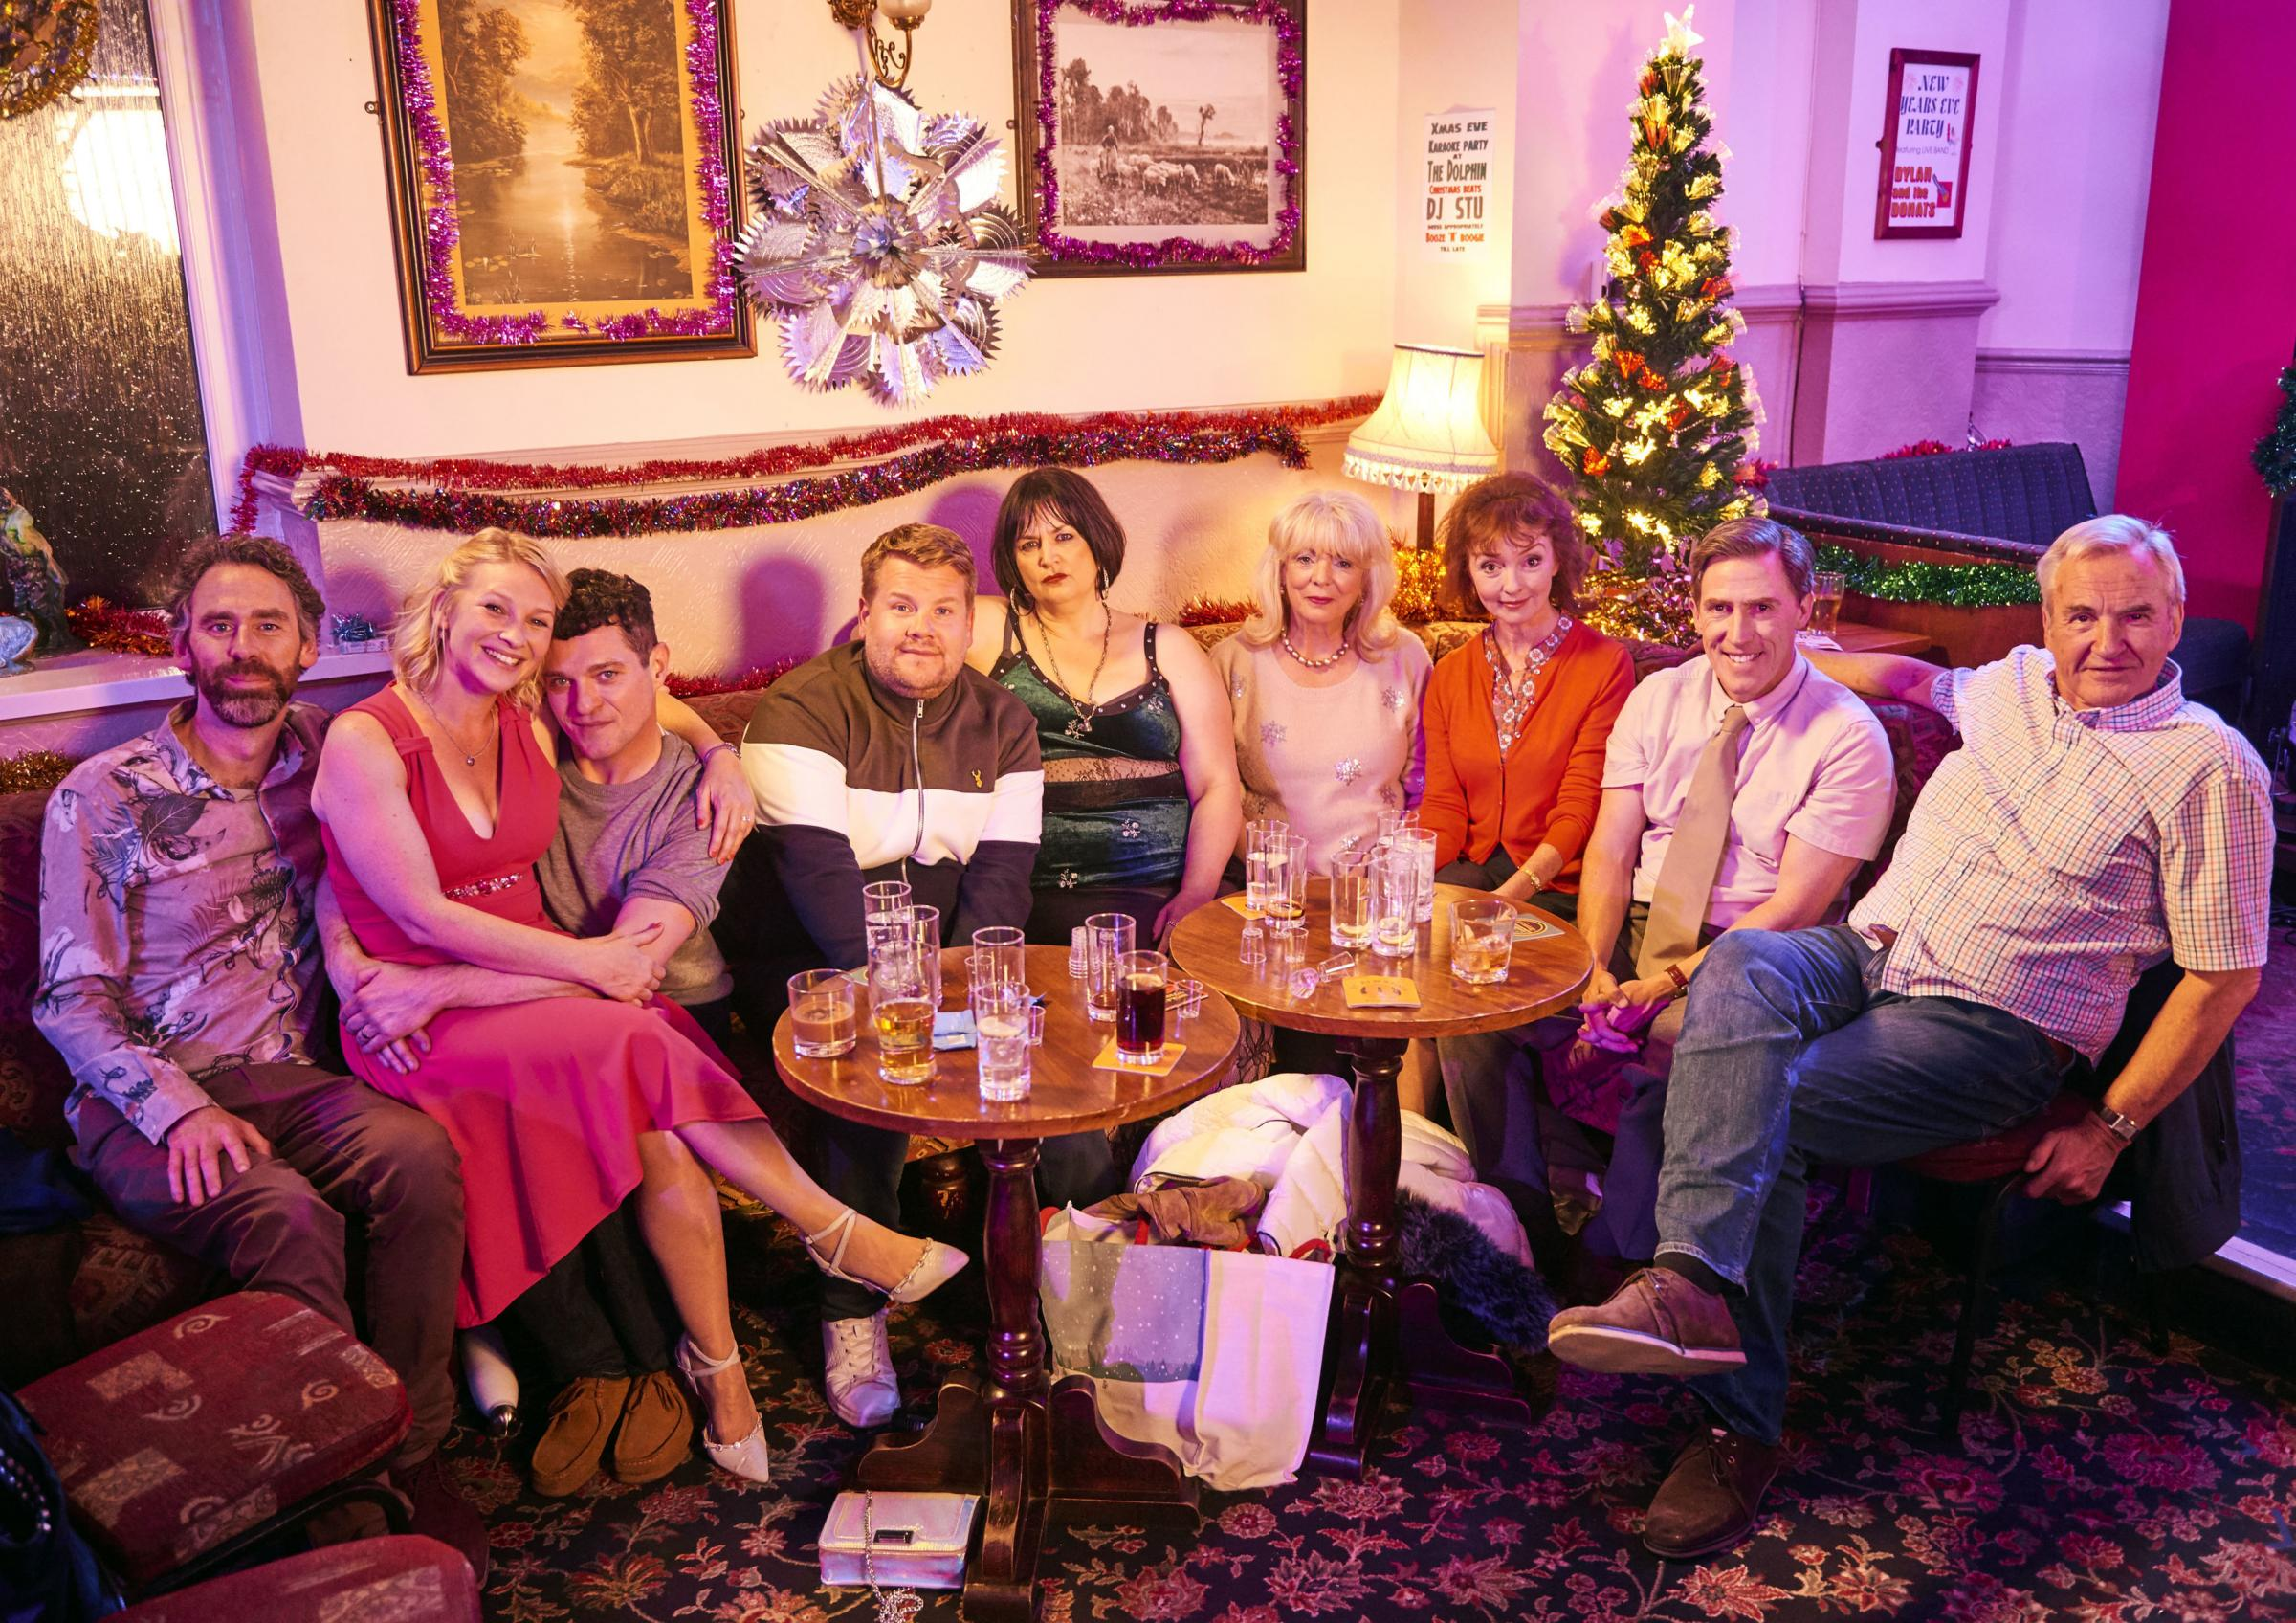 Gavin Stacey star hints another special may be coming